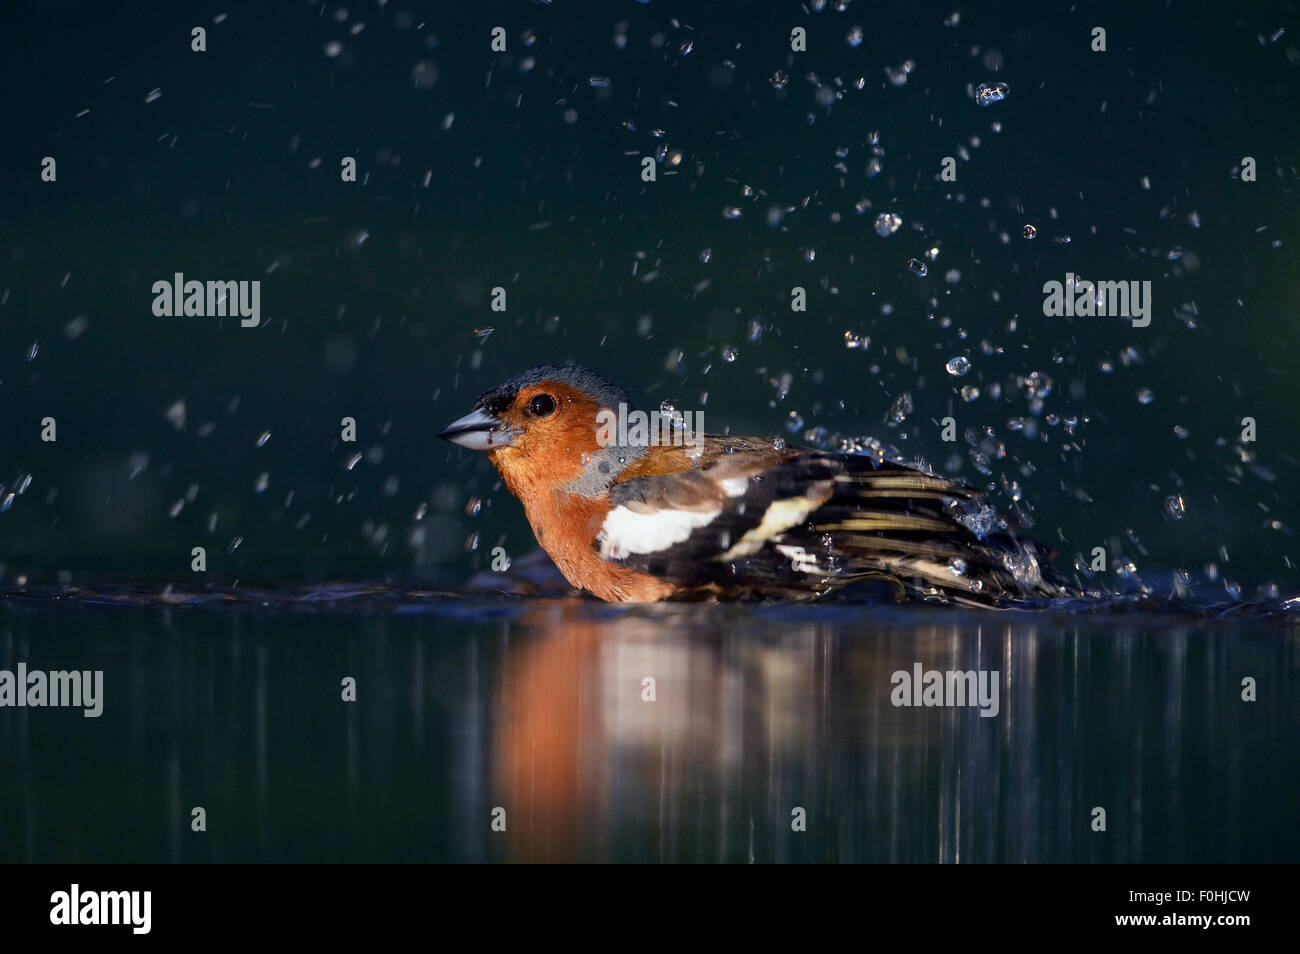 Chaffinch (Fringilla coelebs) having a water bath. Hungary, May. Wild Wonders of Europe, Magic Moments Book. - Stock Image